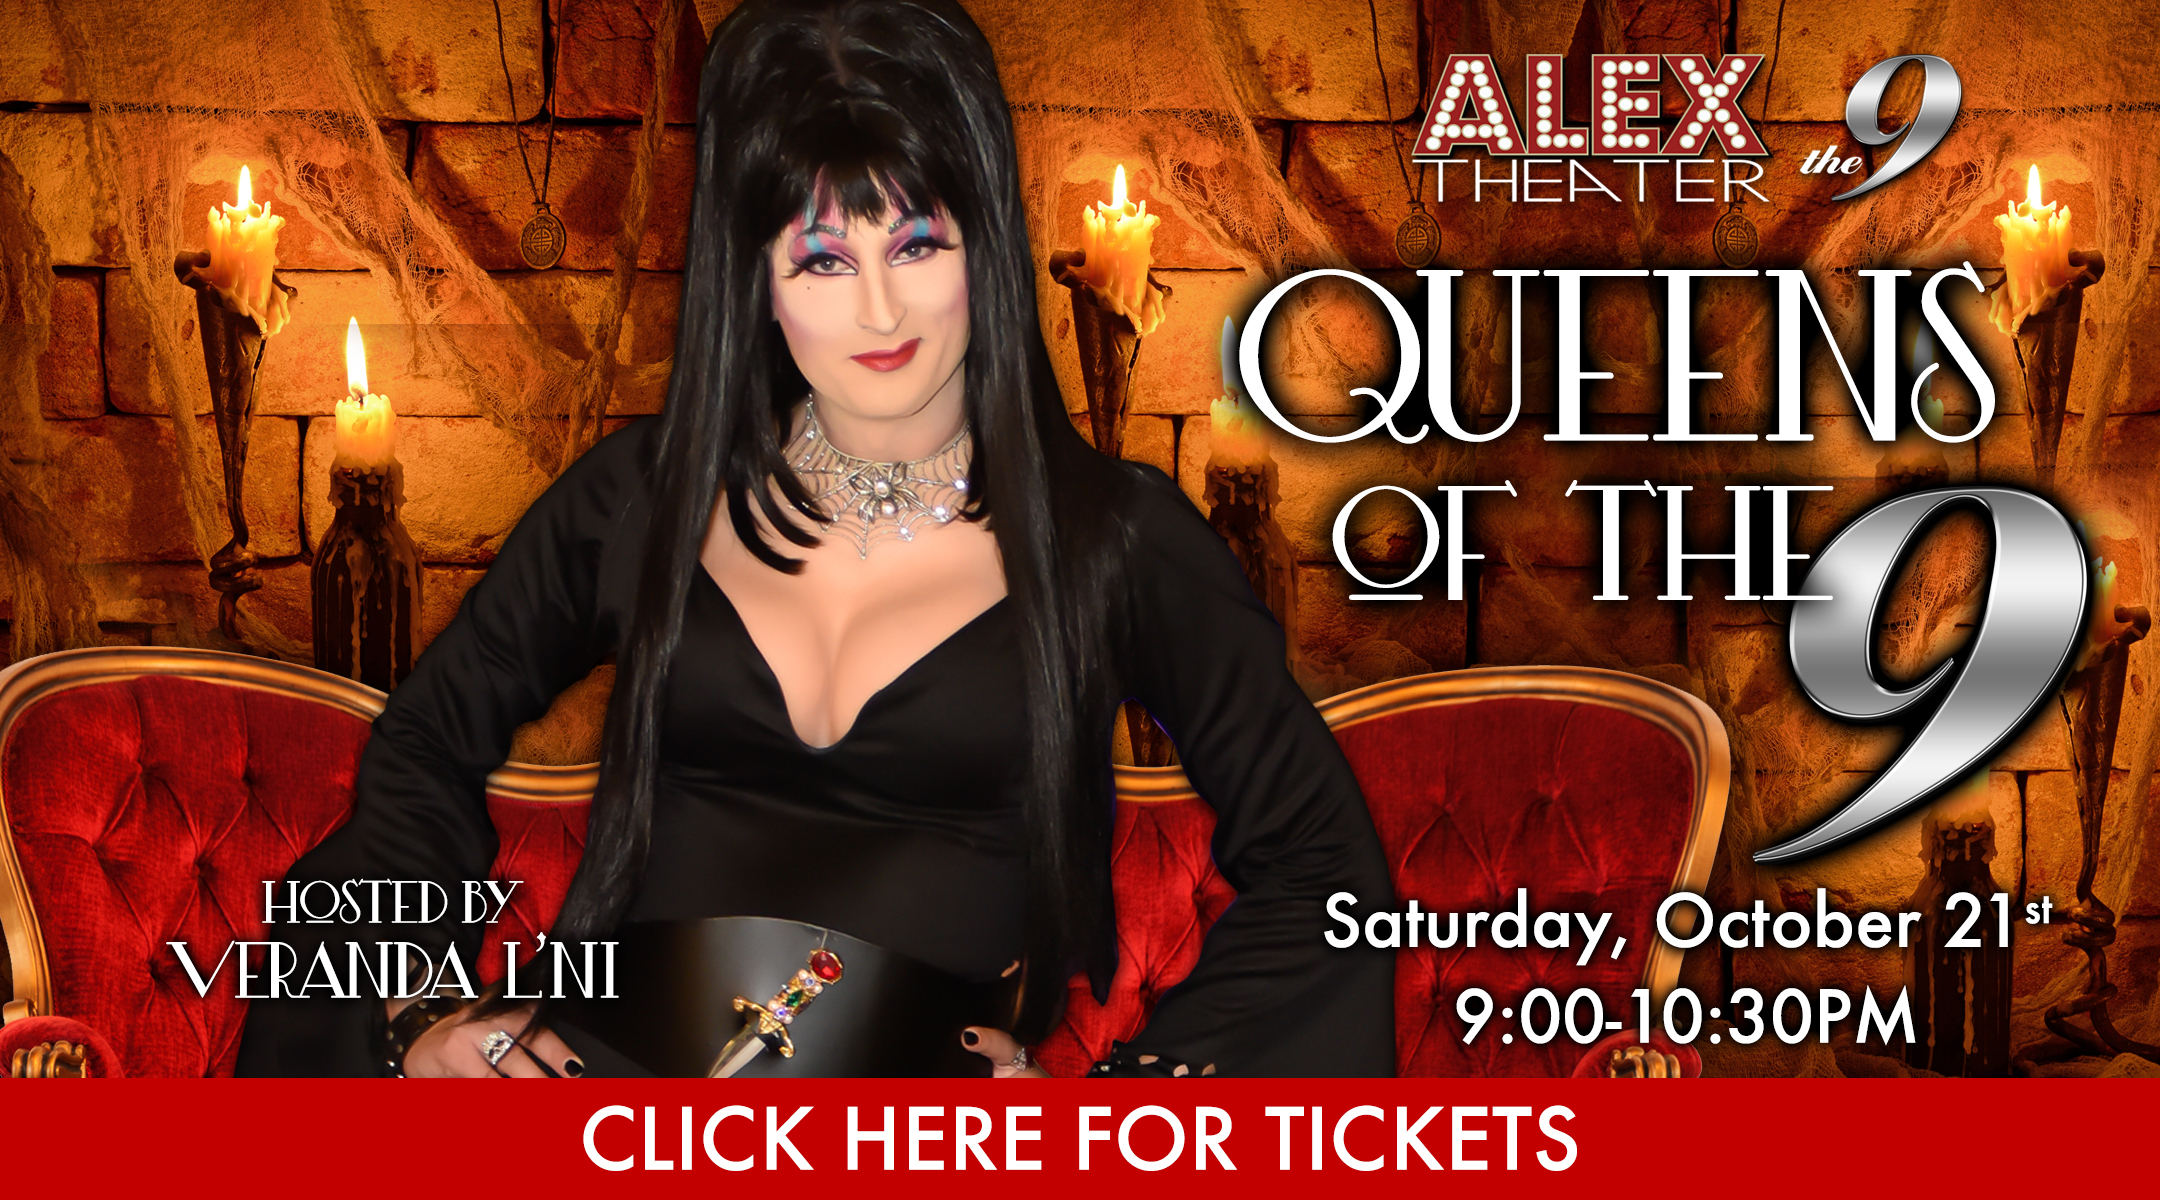 Queens-at-The-9-Website-Event-Graphic.jpg